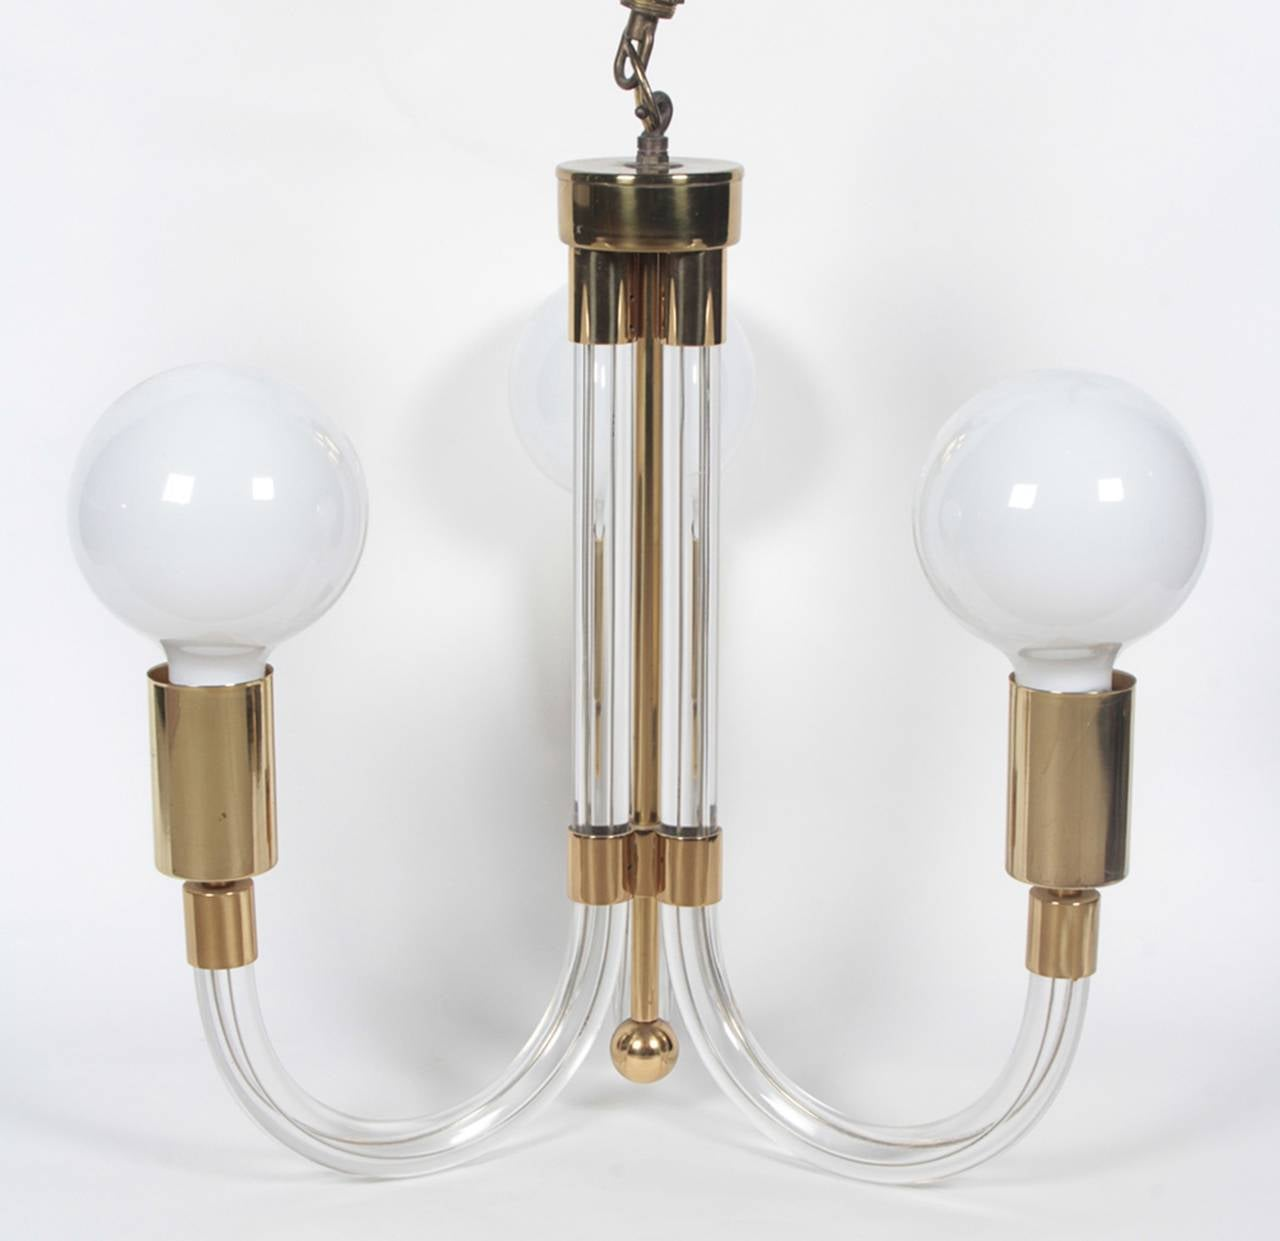 Fantastic Lucite and brass chandelier designed by Charles Hollis Jones in the 1960s.